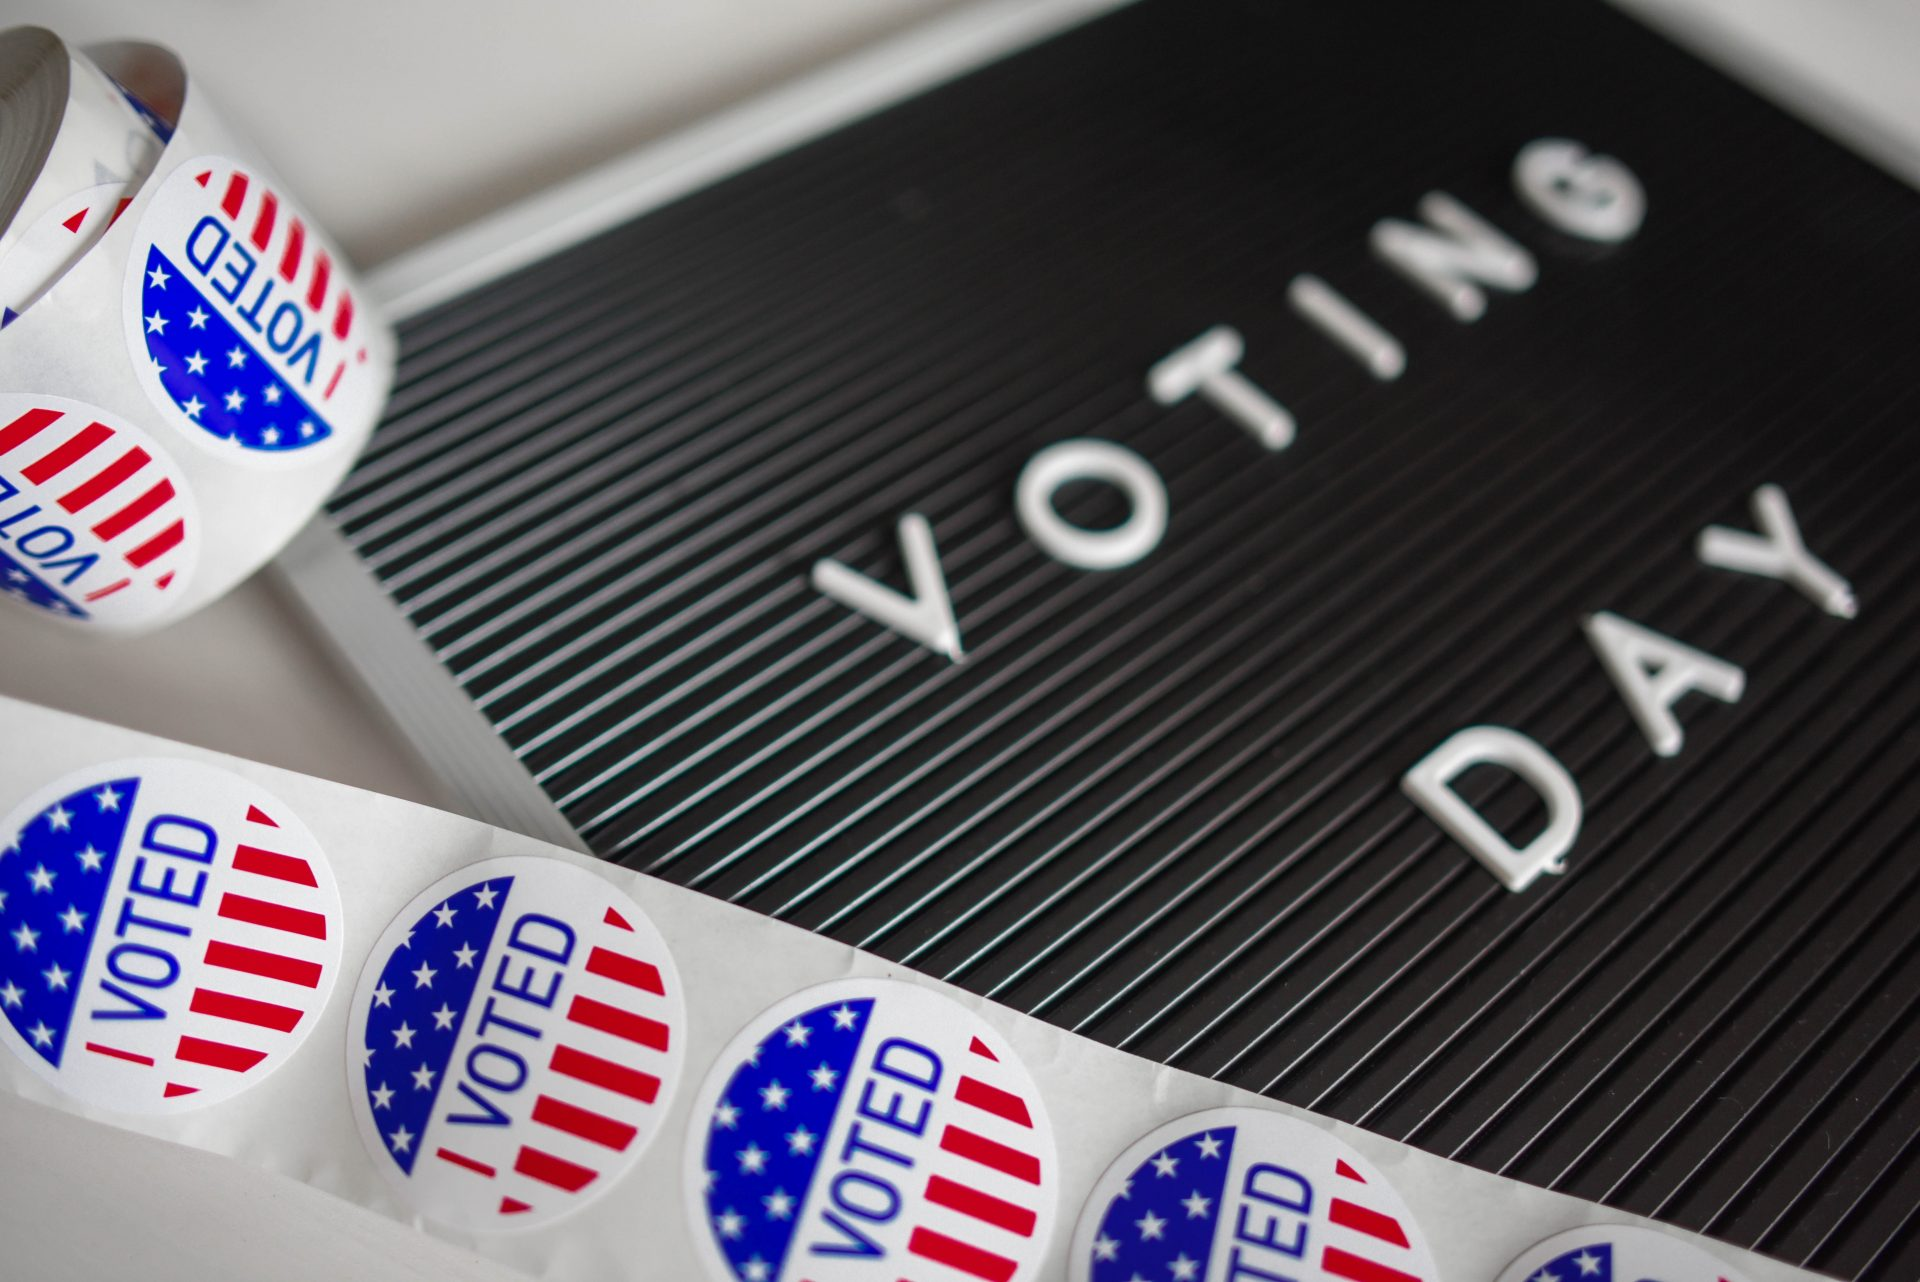 Thy Kingdom Come: Being a Counterculture Teen on Election Day